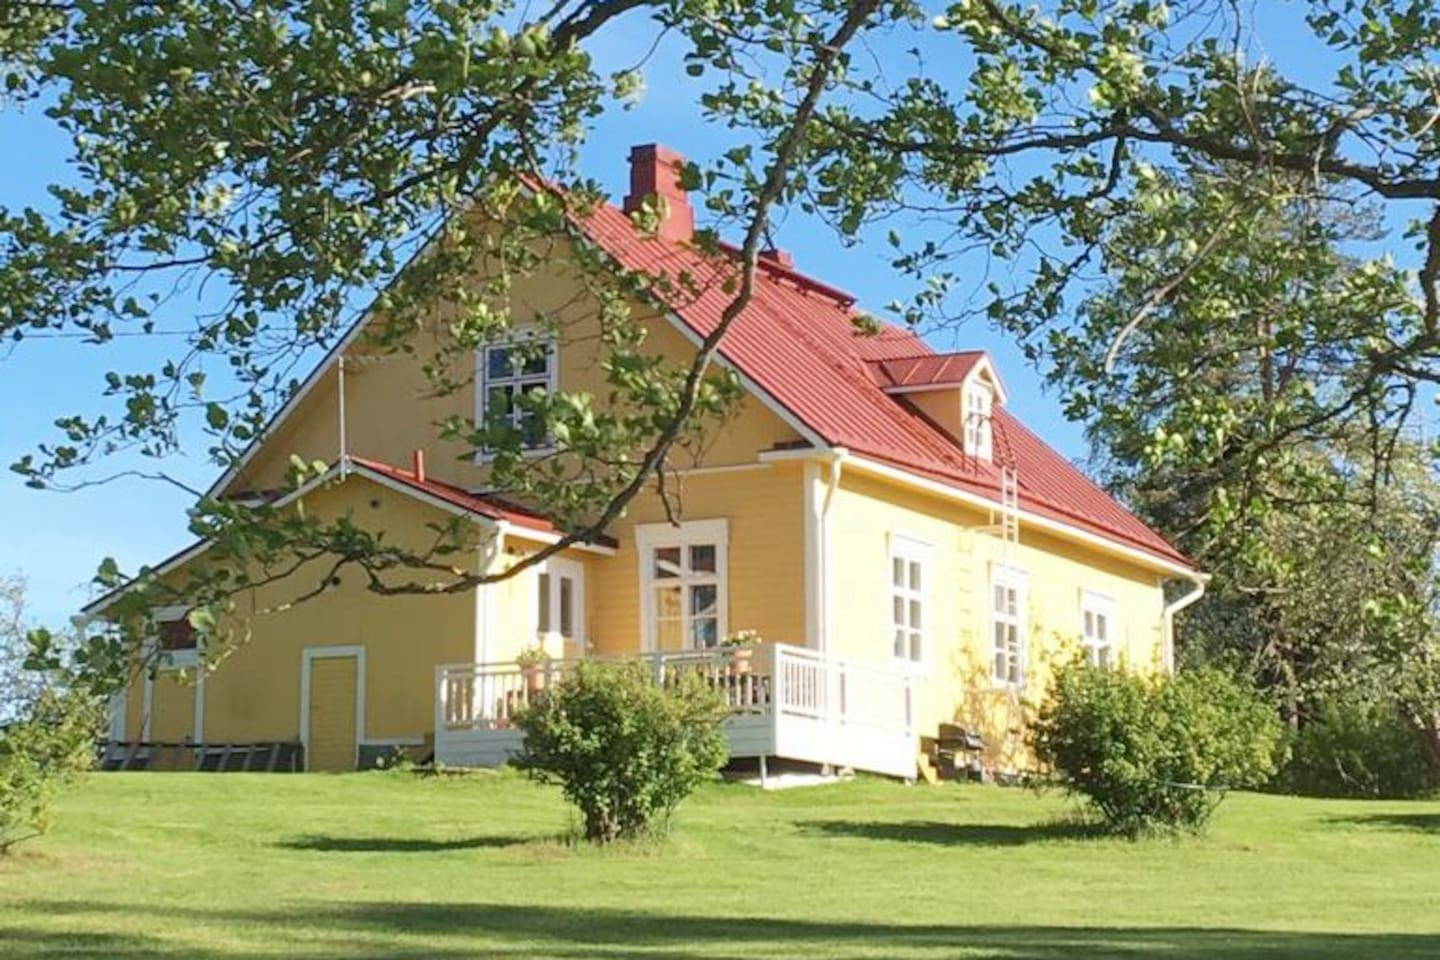 Lovely Villa Rantala located on Leskijärvi lake